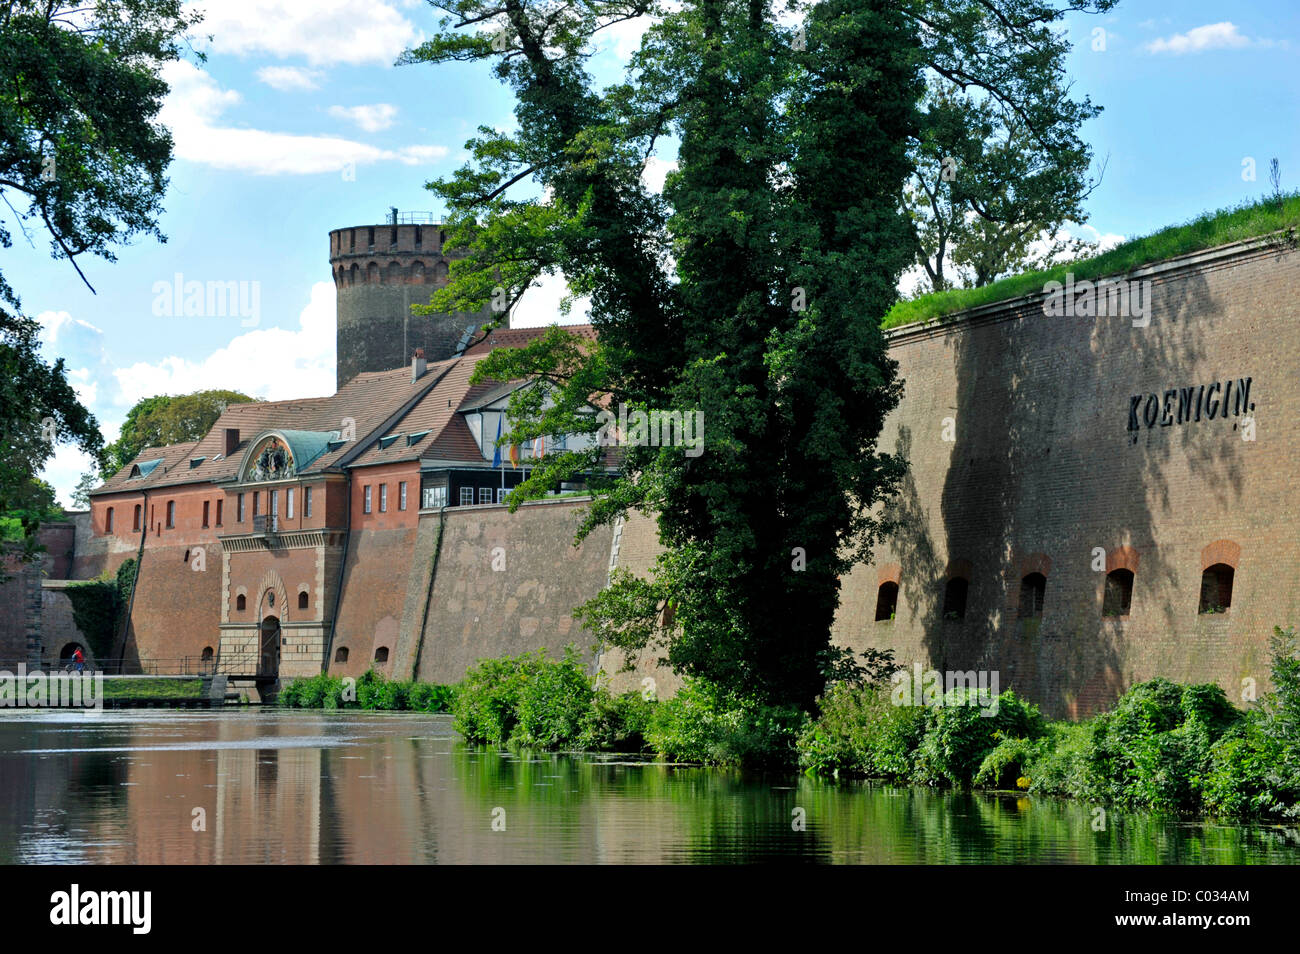 Commandant's House, Queen's Bastion, with moats, Spandau Citadel fortress, Berlin, Germany, Europe - Stock Image